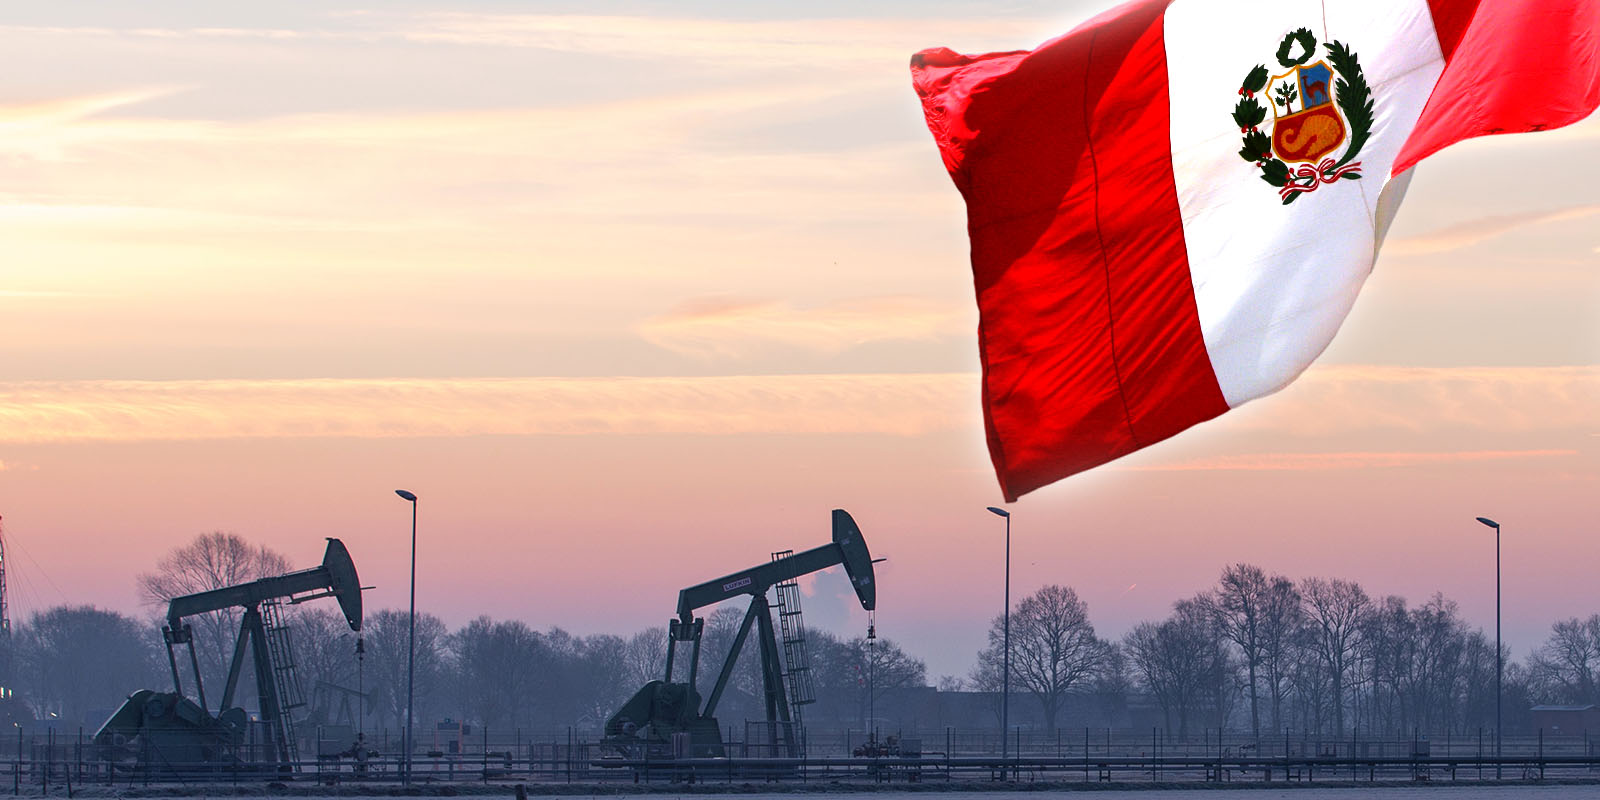 Peru begins second half with flat crude output, gas dips